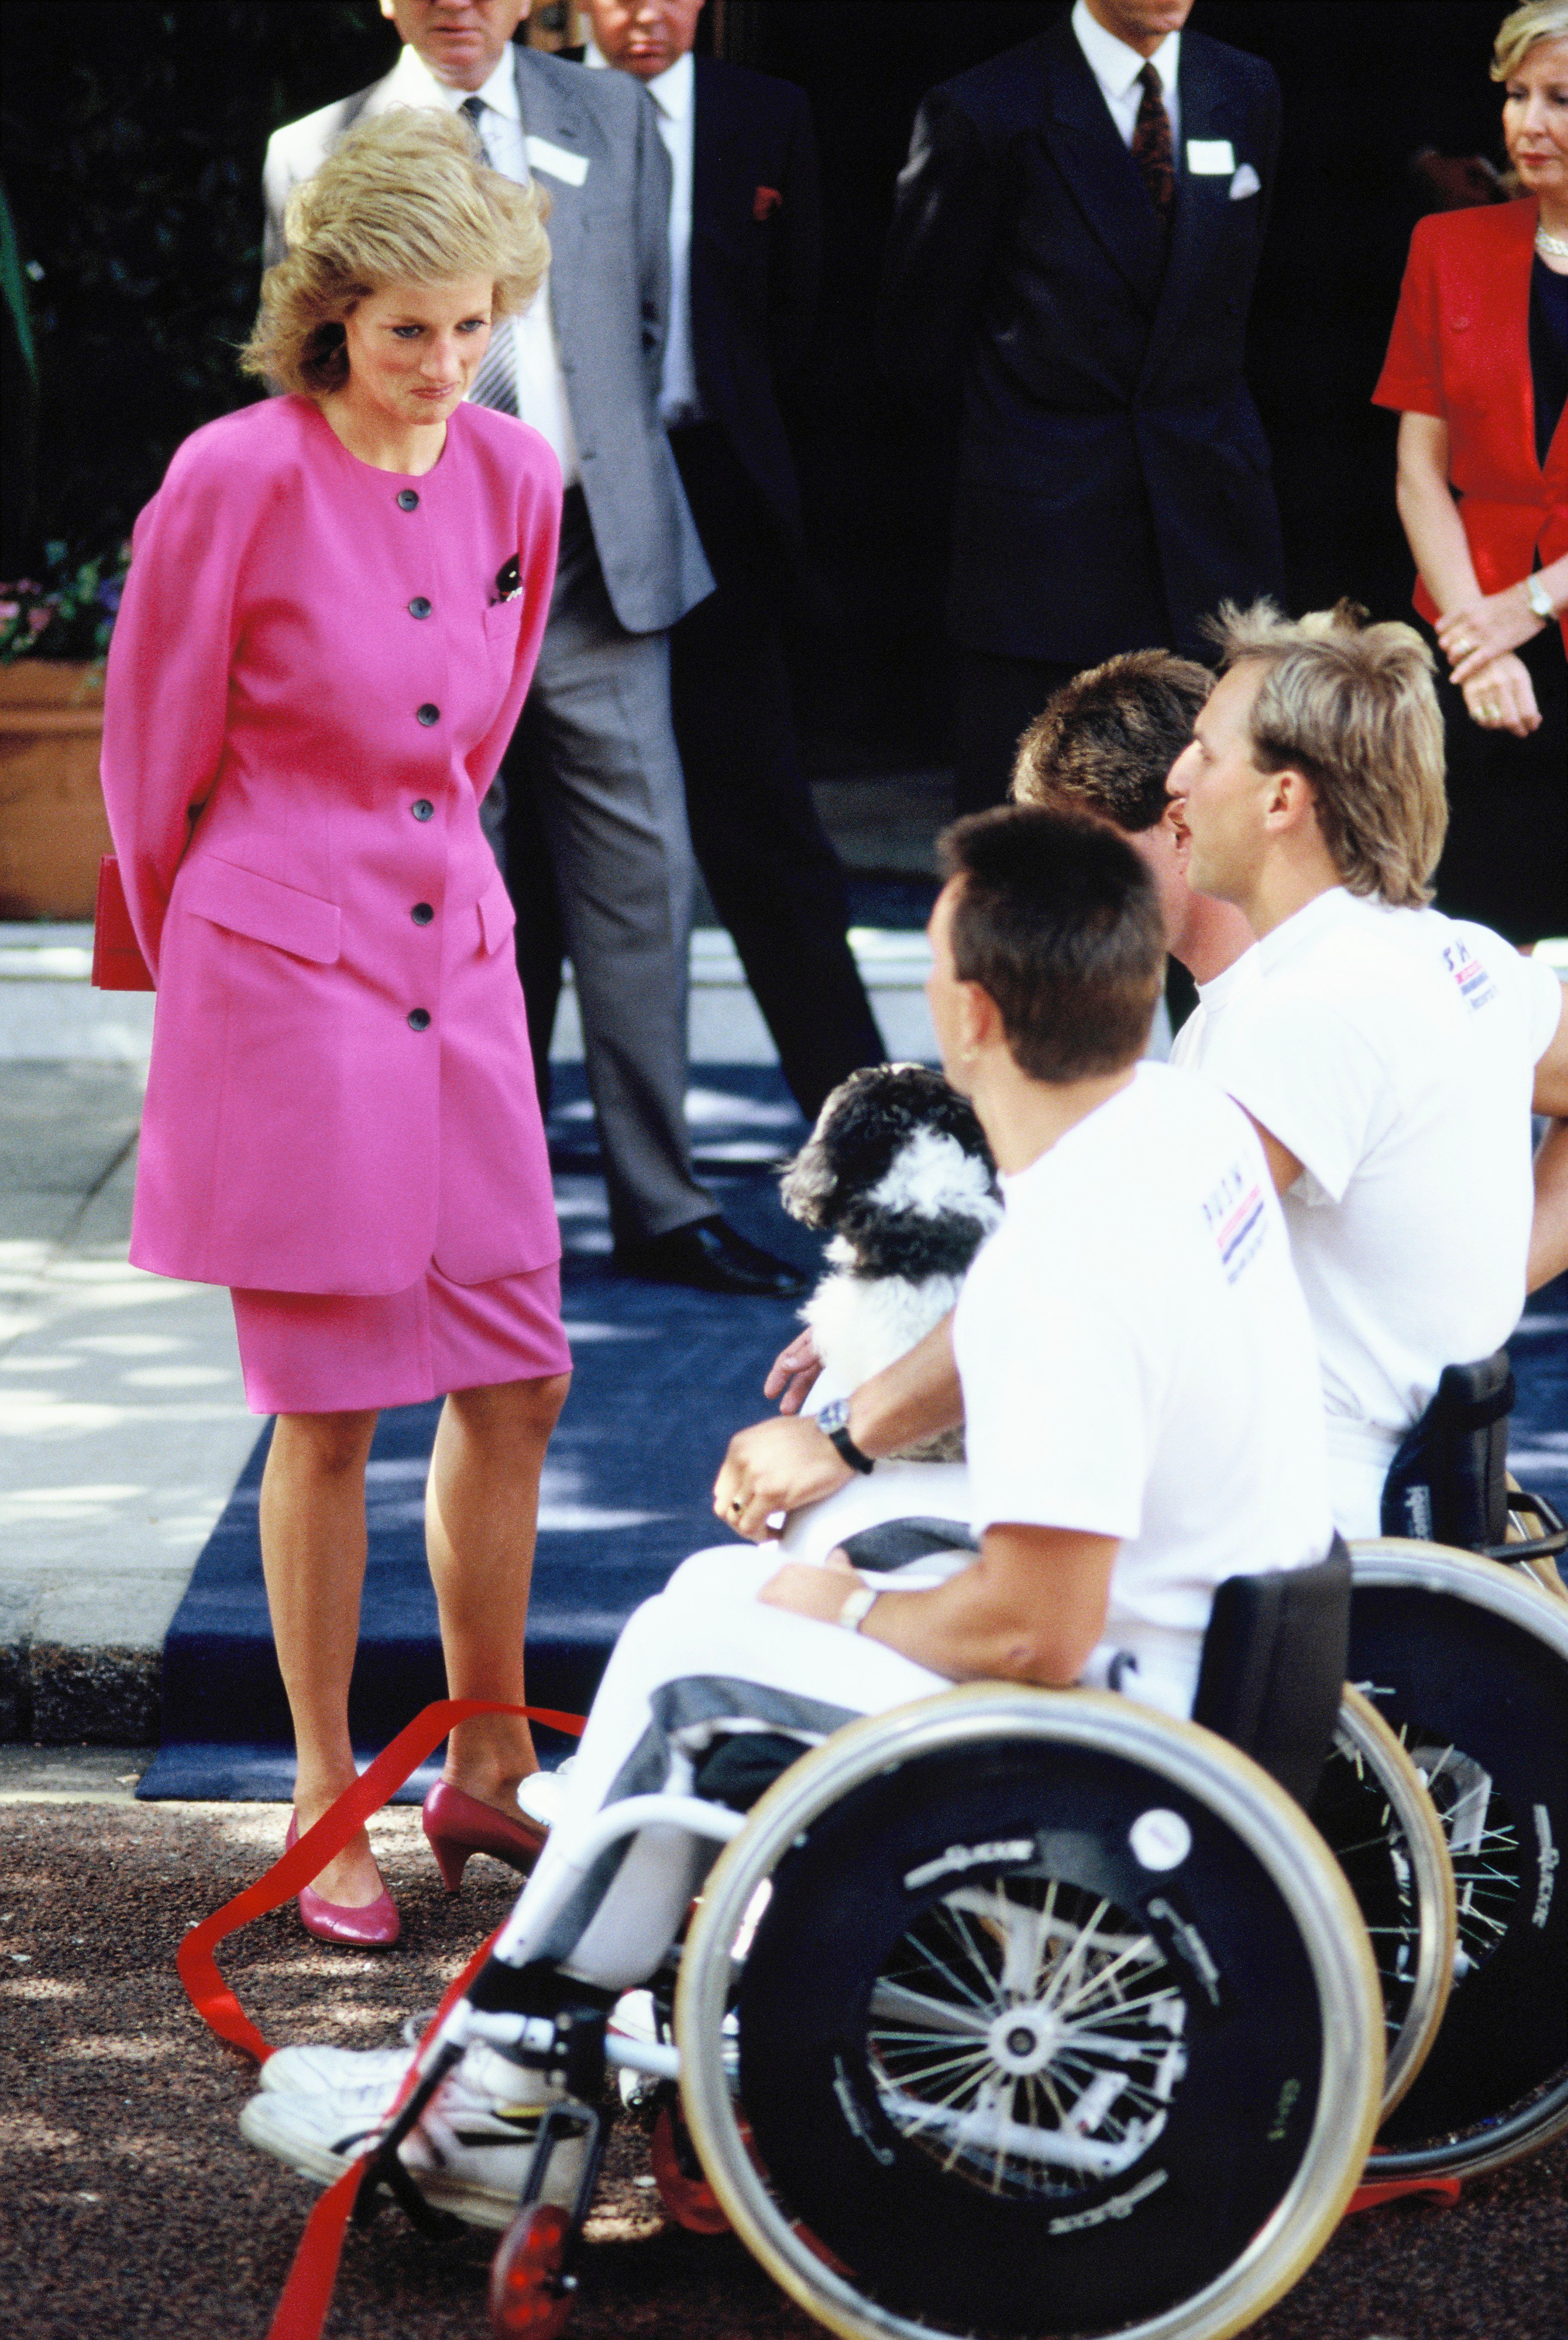 Diana, Princess of Wales, visits people in wheelchairs in 1988. | Source: Getty Images